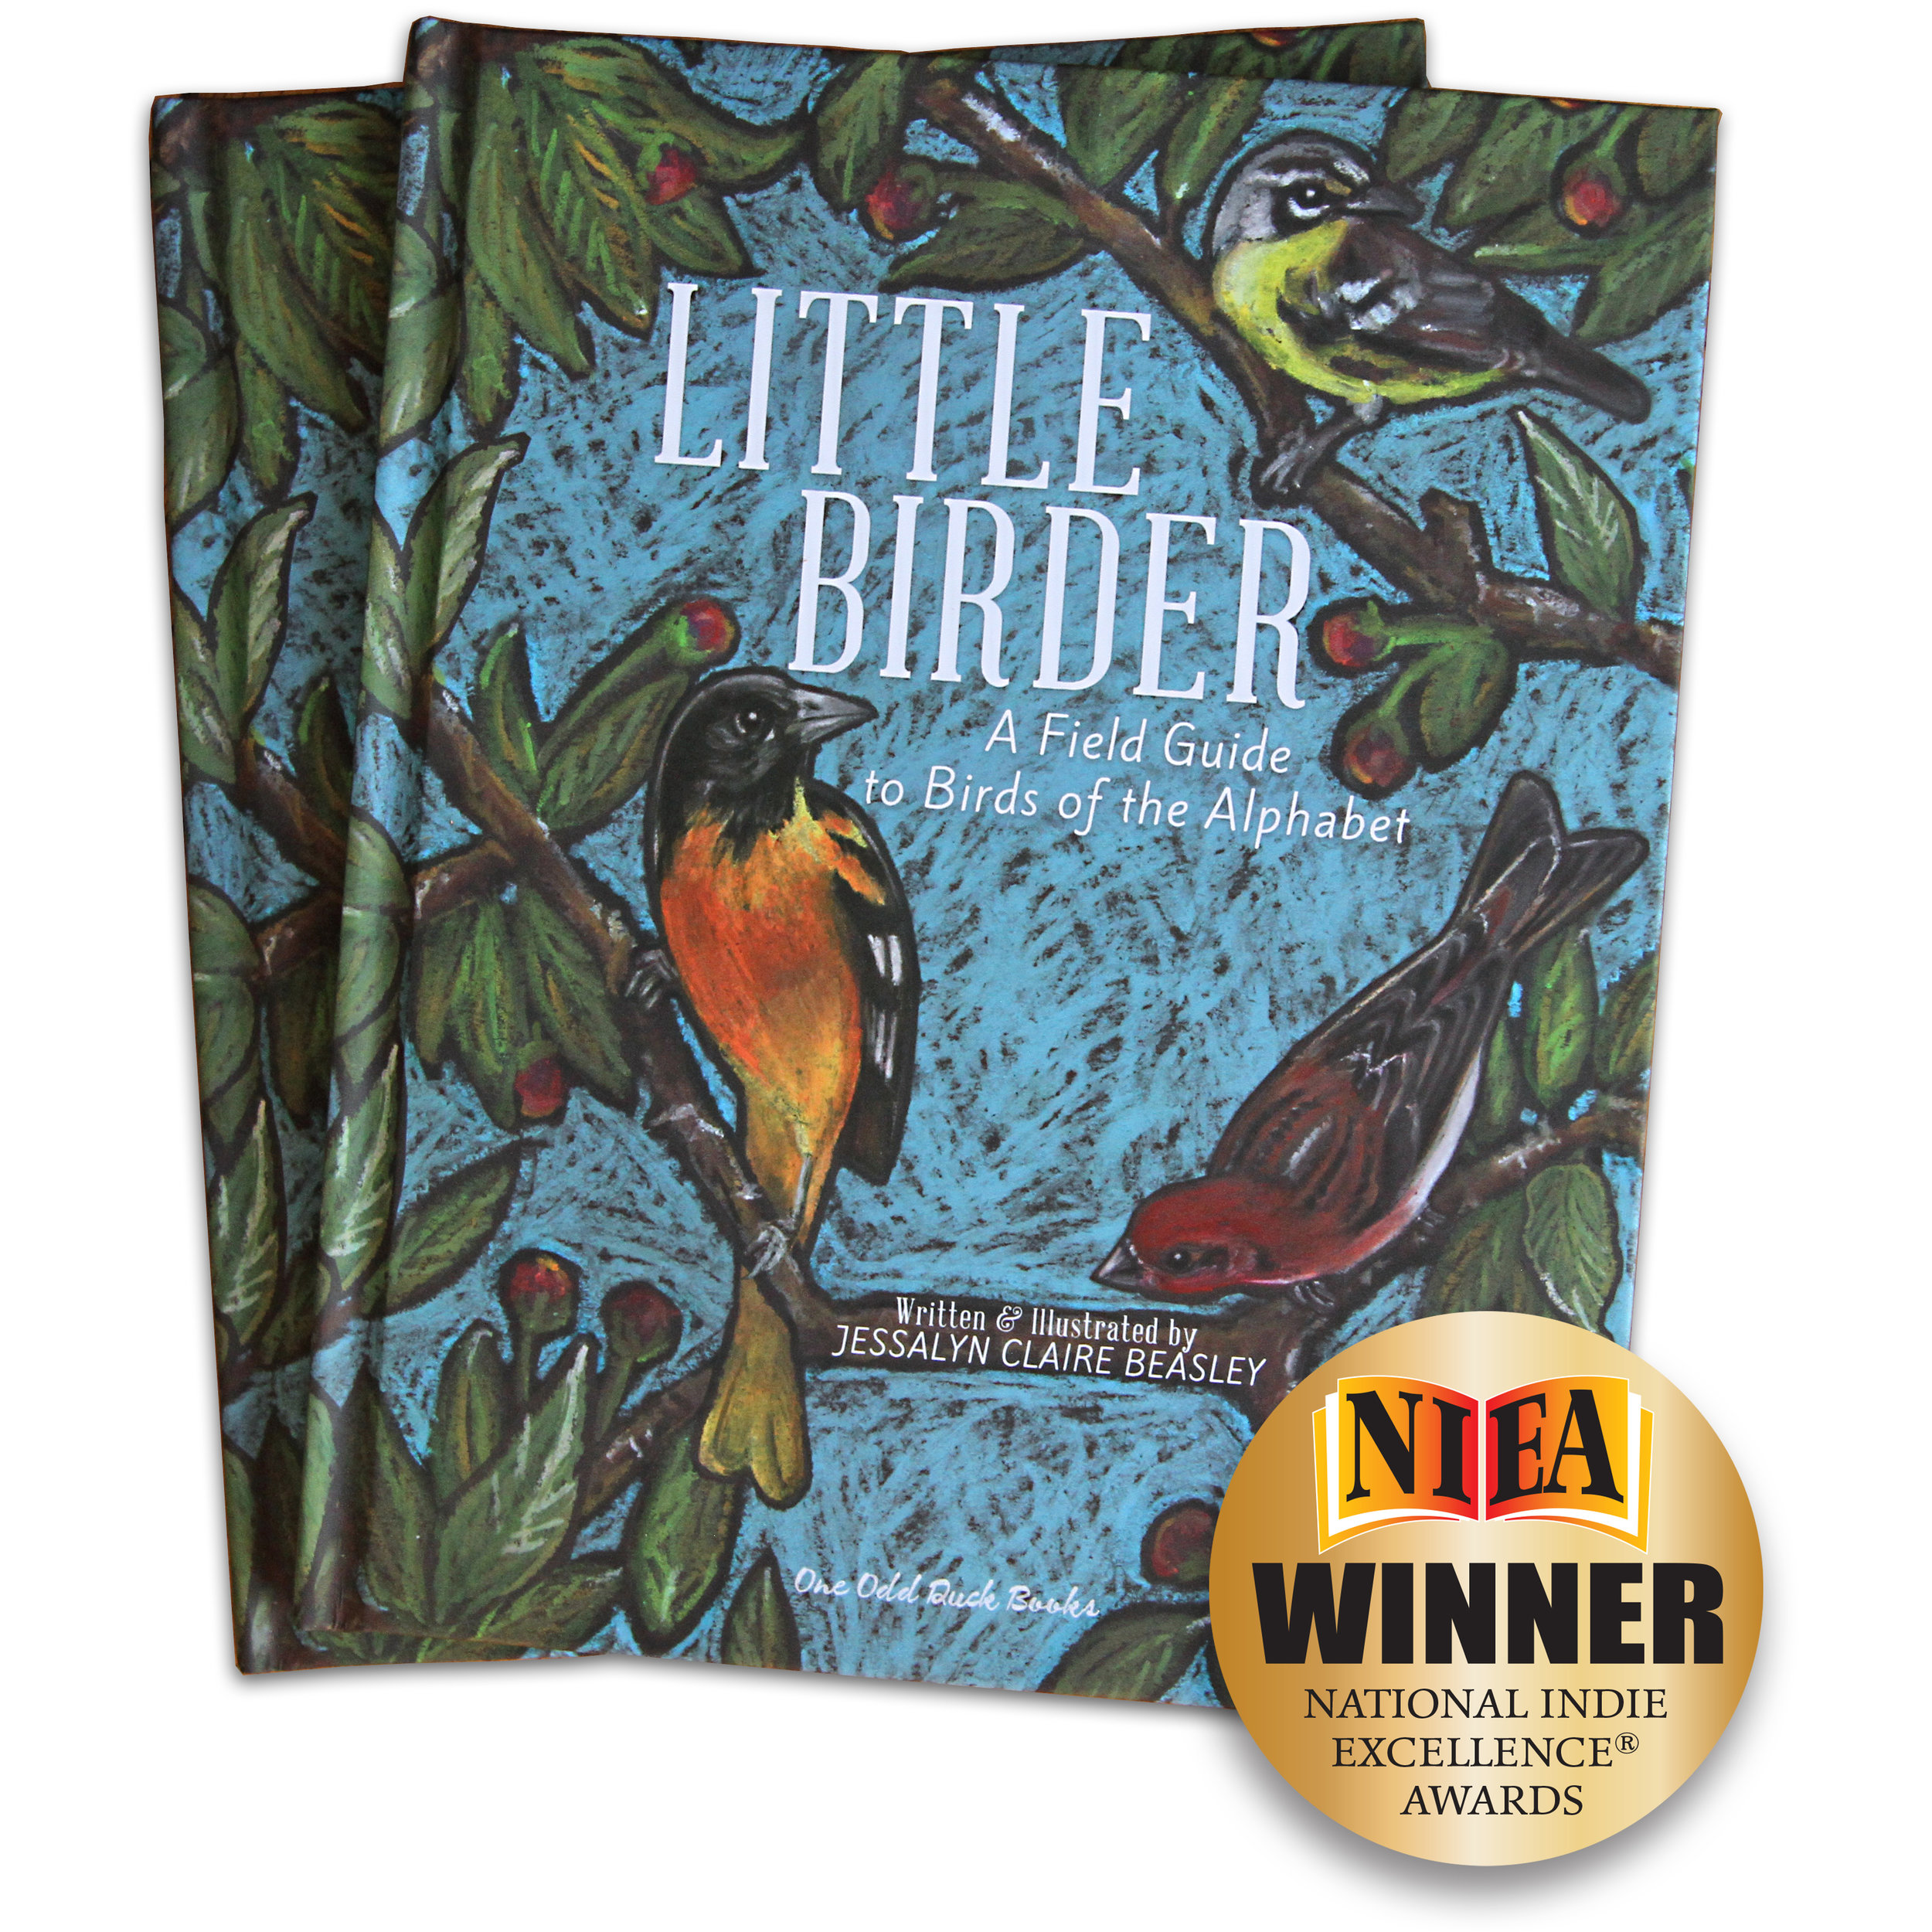 Little Birder Childrens book award winning